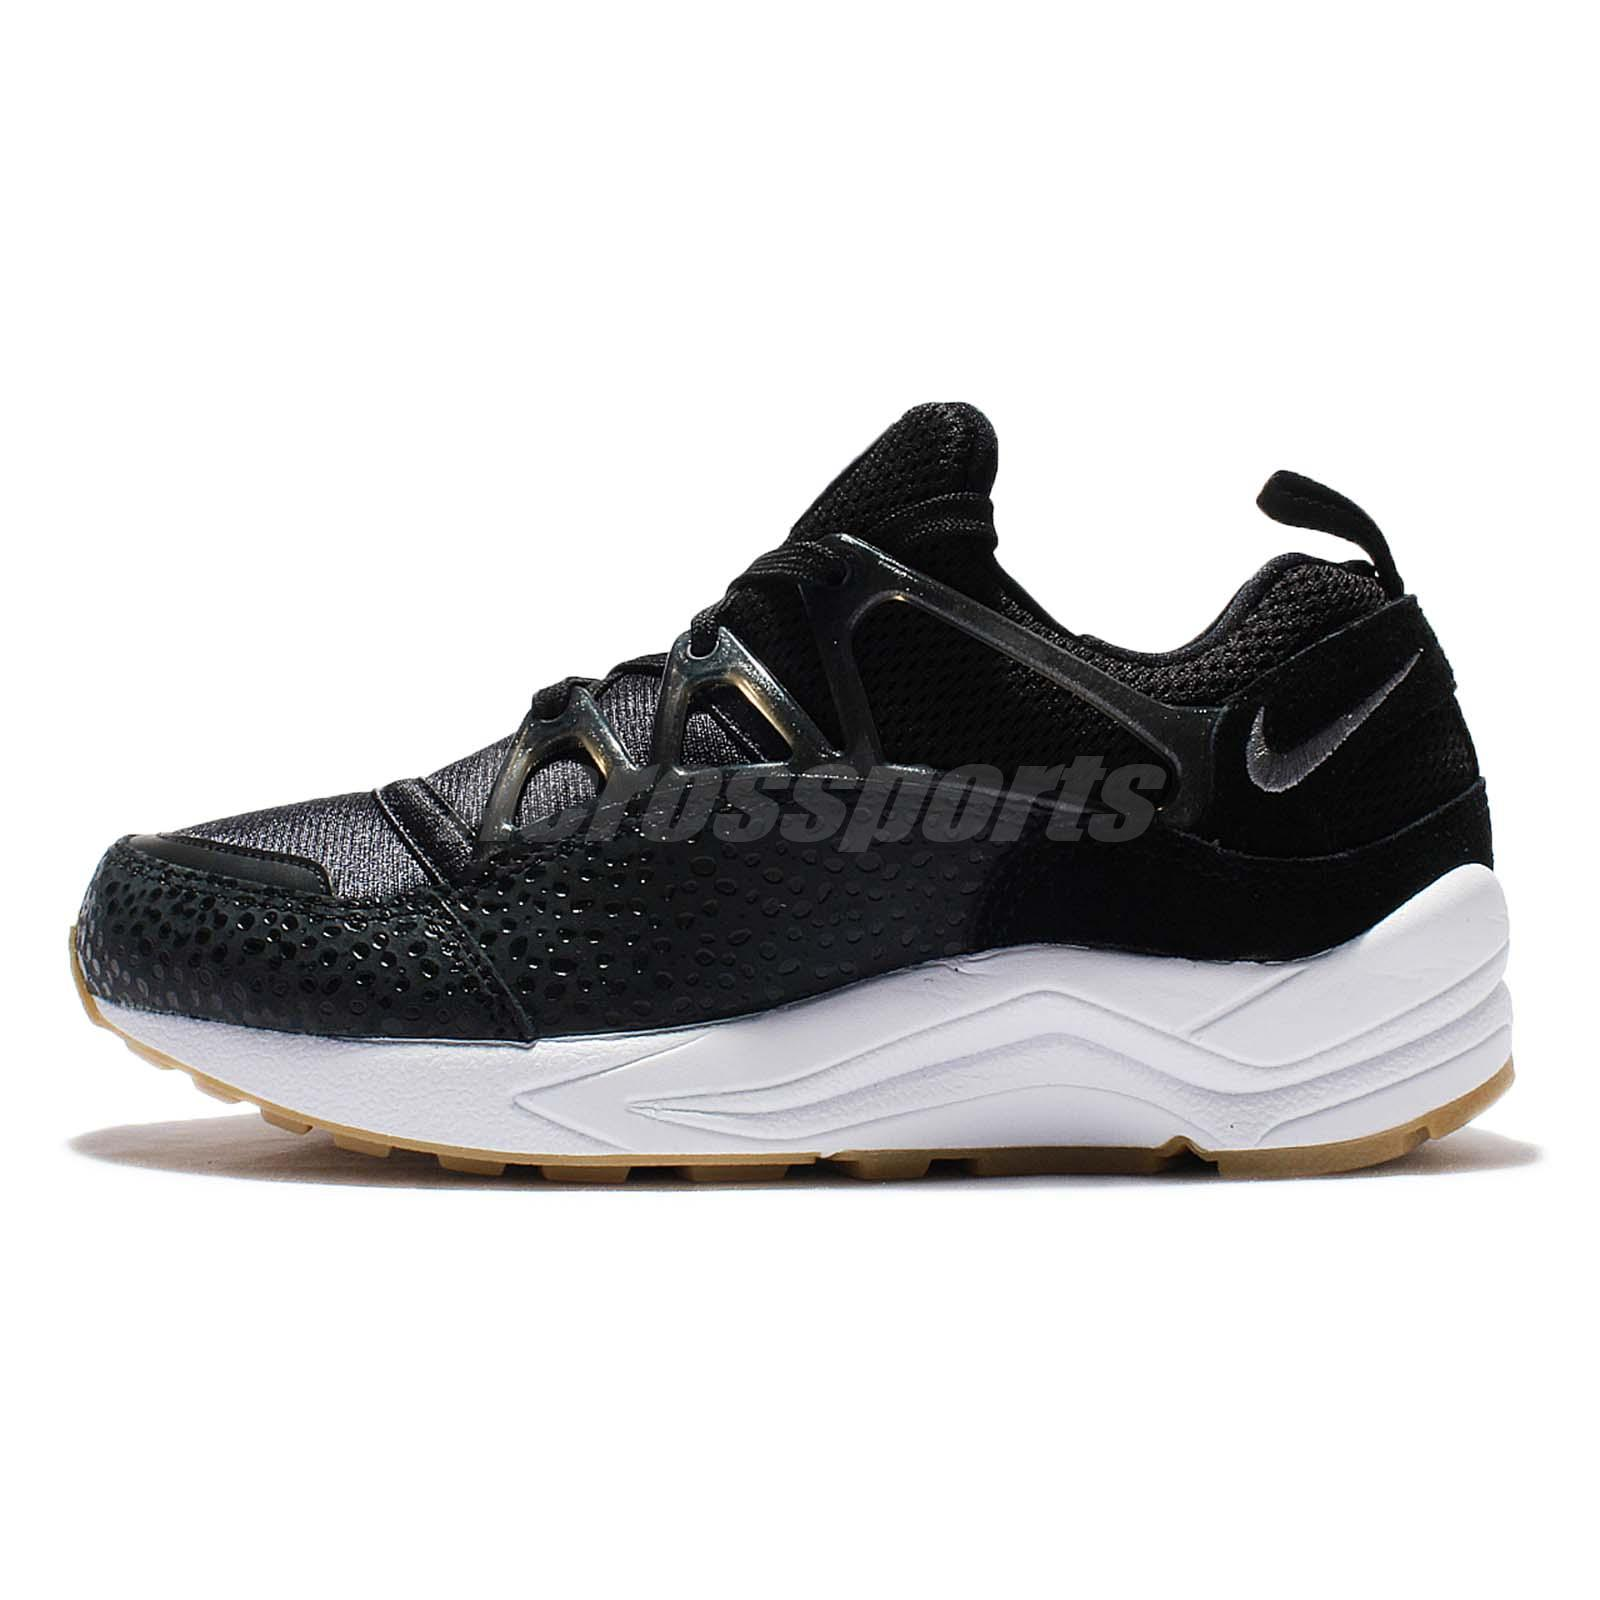 buy popular 9bf84 7f6bd Nike Wmns Air Huarache Light PRM Black Safari Gum Women Running Shoes  819011-001